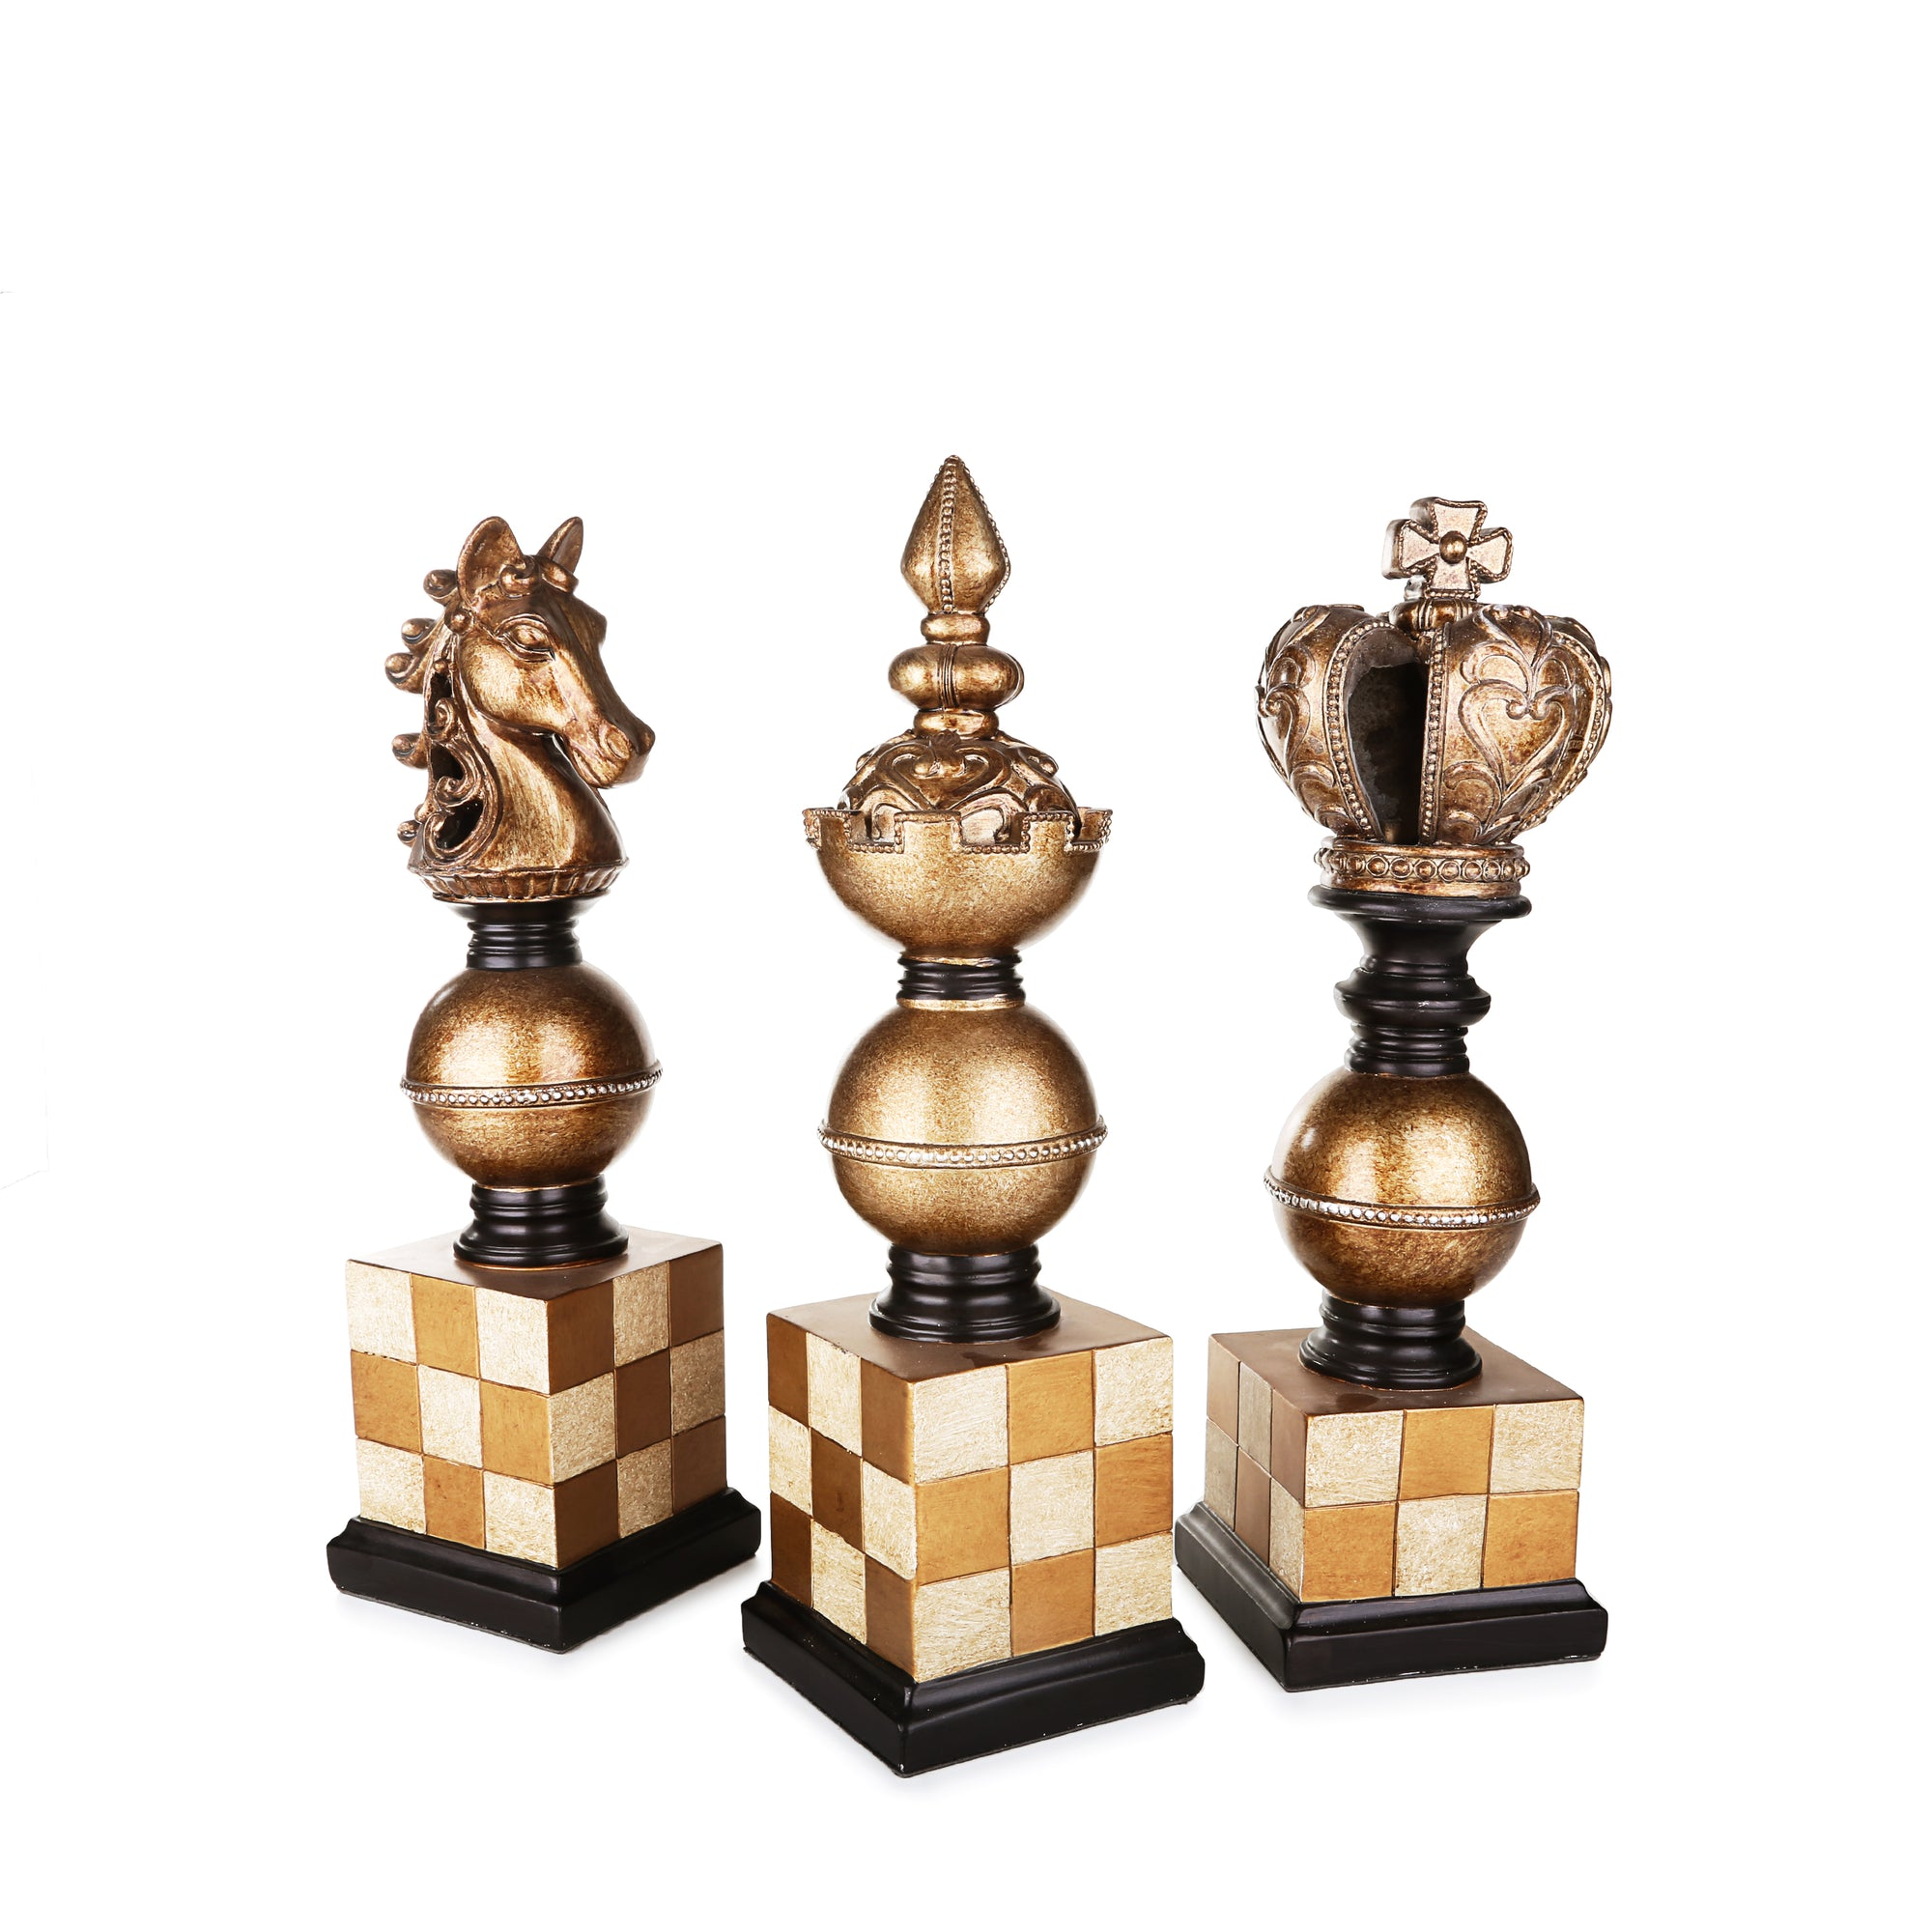 Chess Pieces Ornaments (Set of 3)